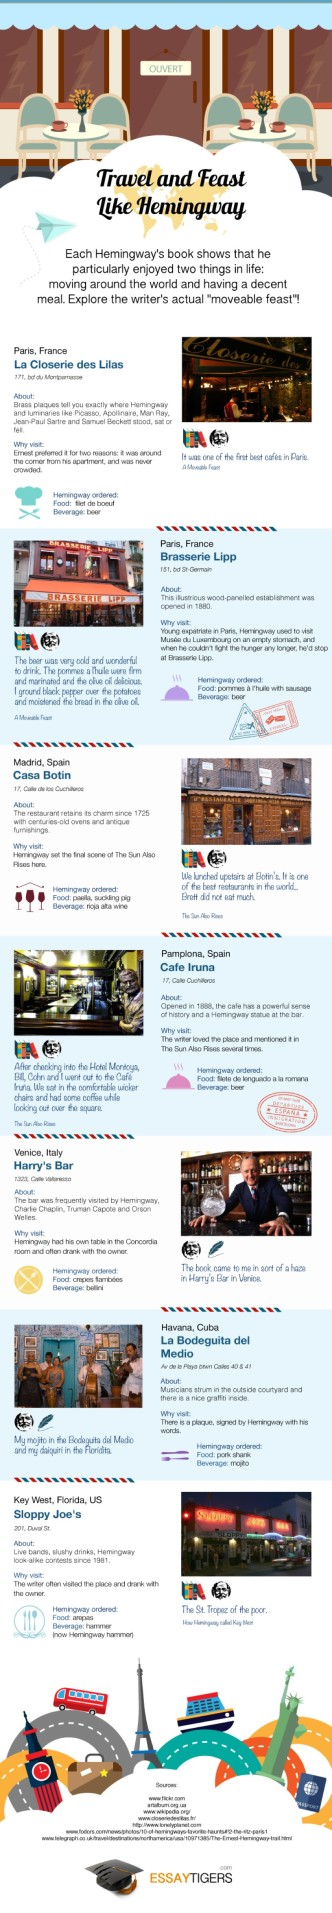 Bars, meals, and beverages Ernest Hemingway liked #infographic